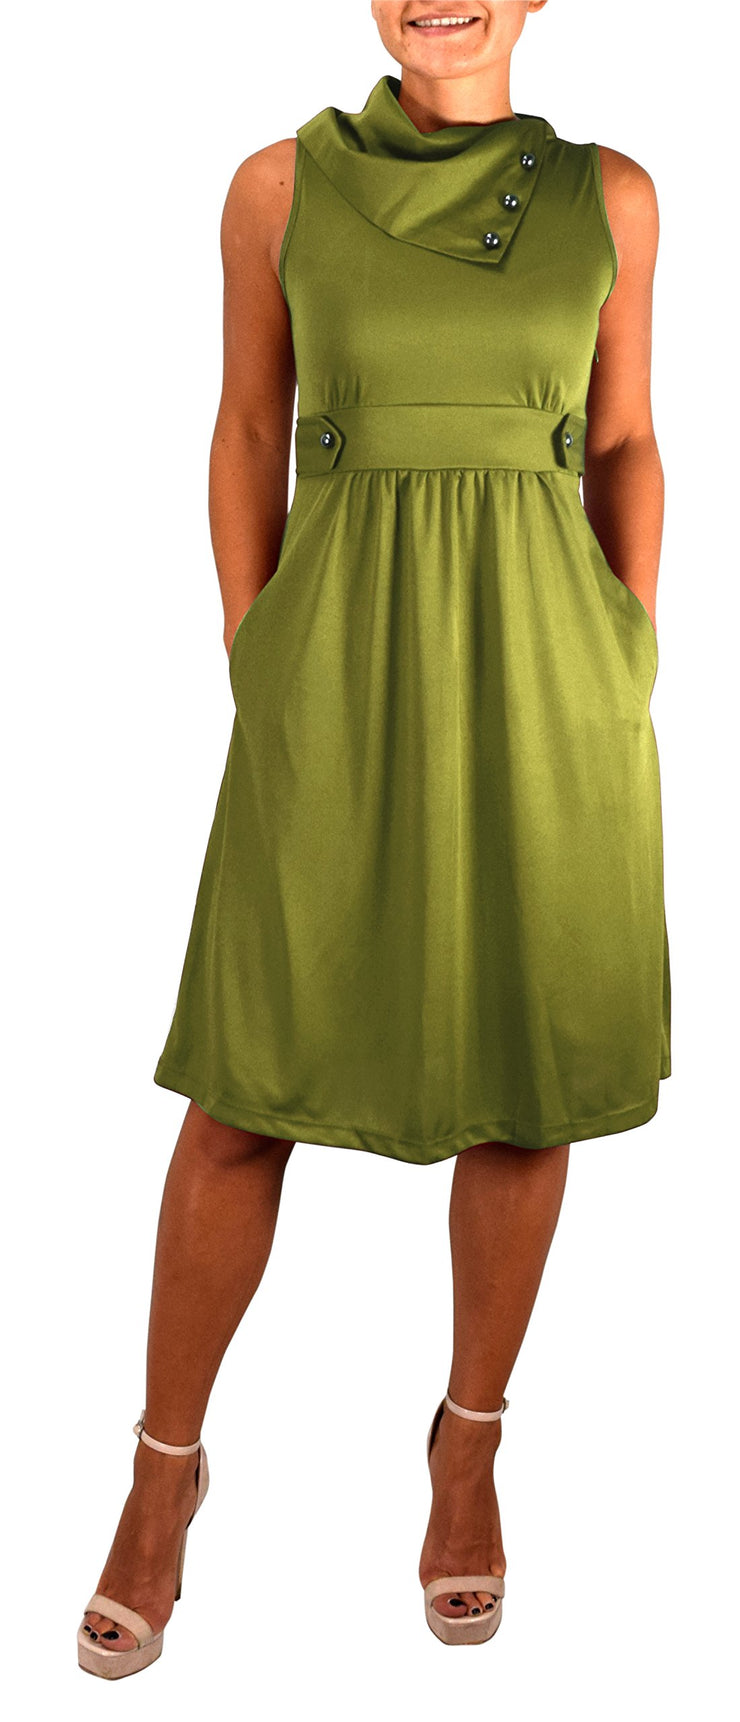 B0920-Foldover-Collar-Dress-Green-M-OS